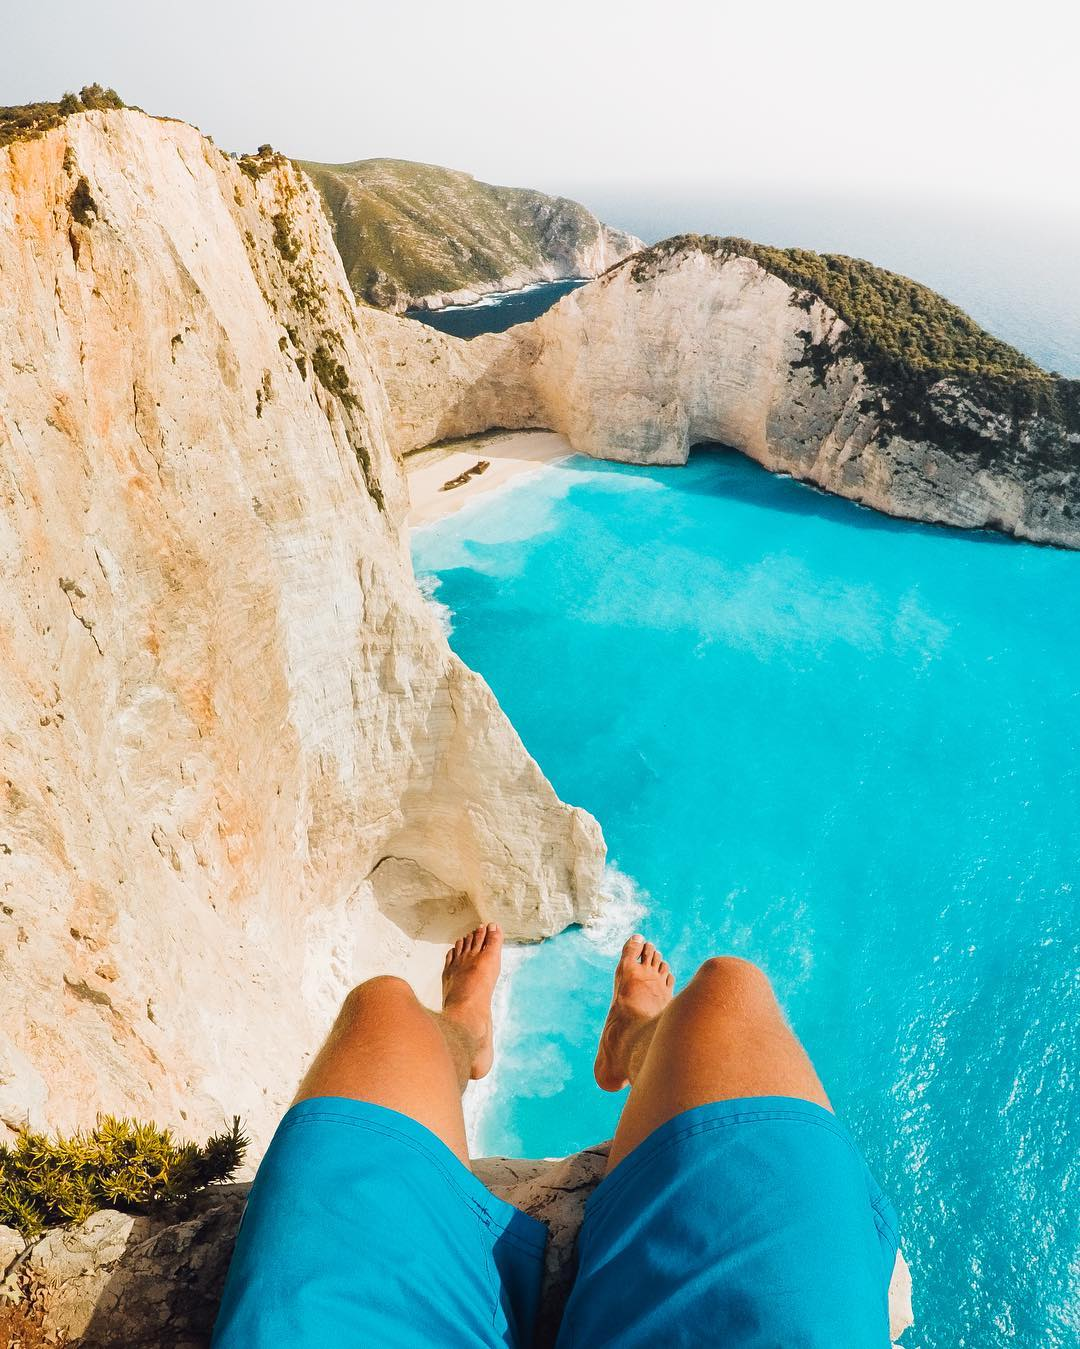 Photo of the Day! @martin_karner is wayyyy up and feeling blessed at #shipwreckbeach. Feeling the #weekendvibes already? Tell us where your going and share with us via link in our bio! #GoPro #GoProTravel #Greece #Zakynthos #Travelgram #Navagio